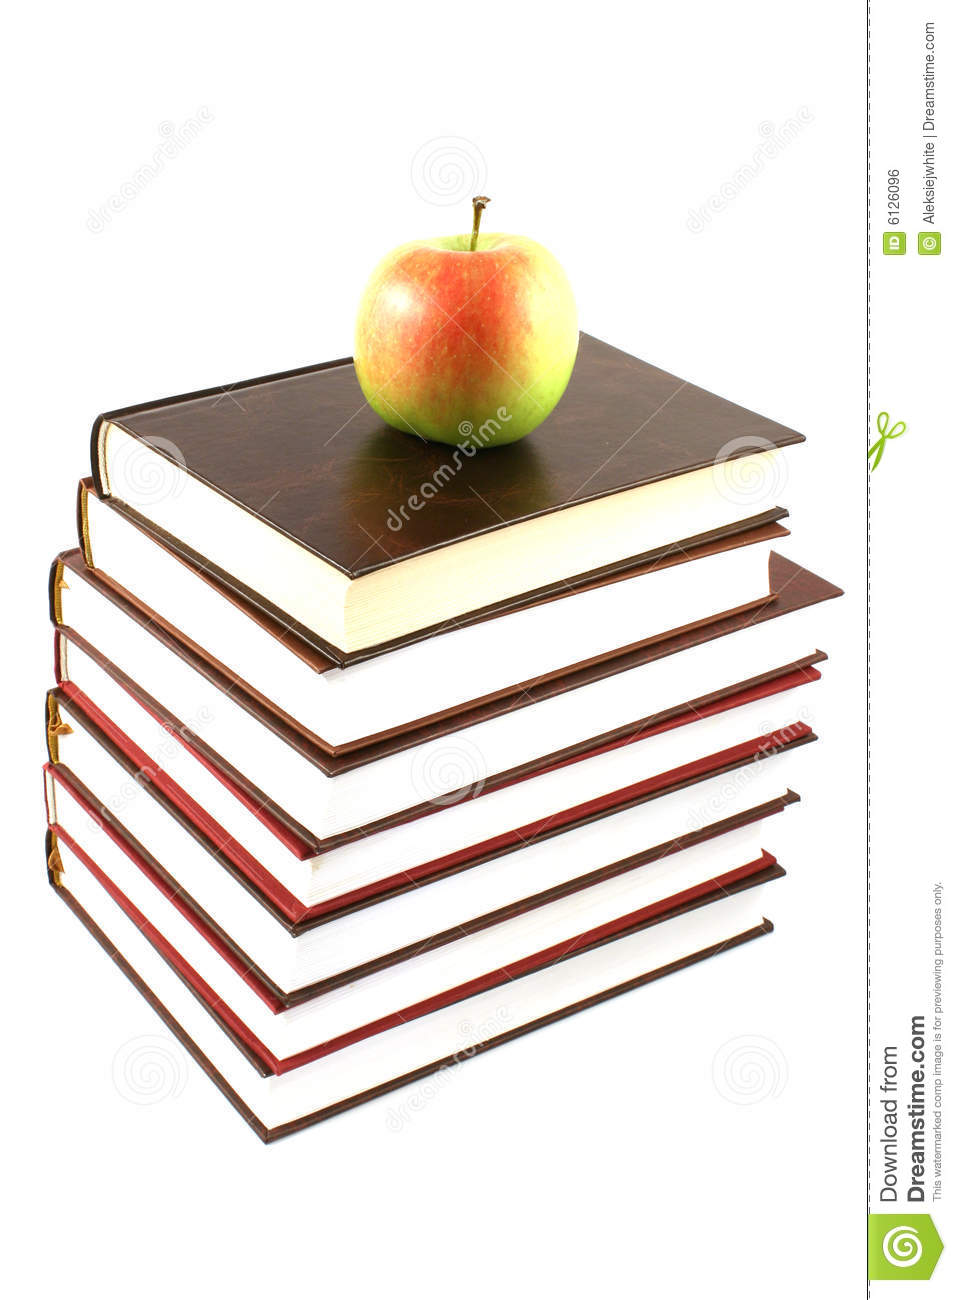 Books pyramid with apple